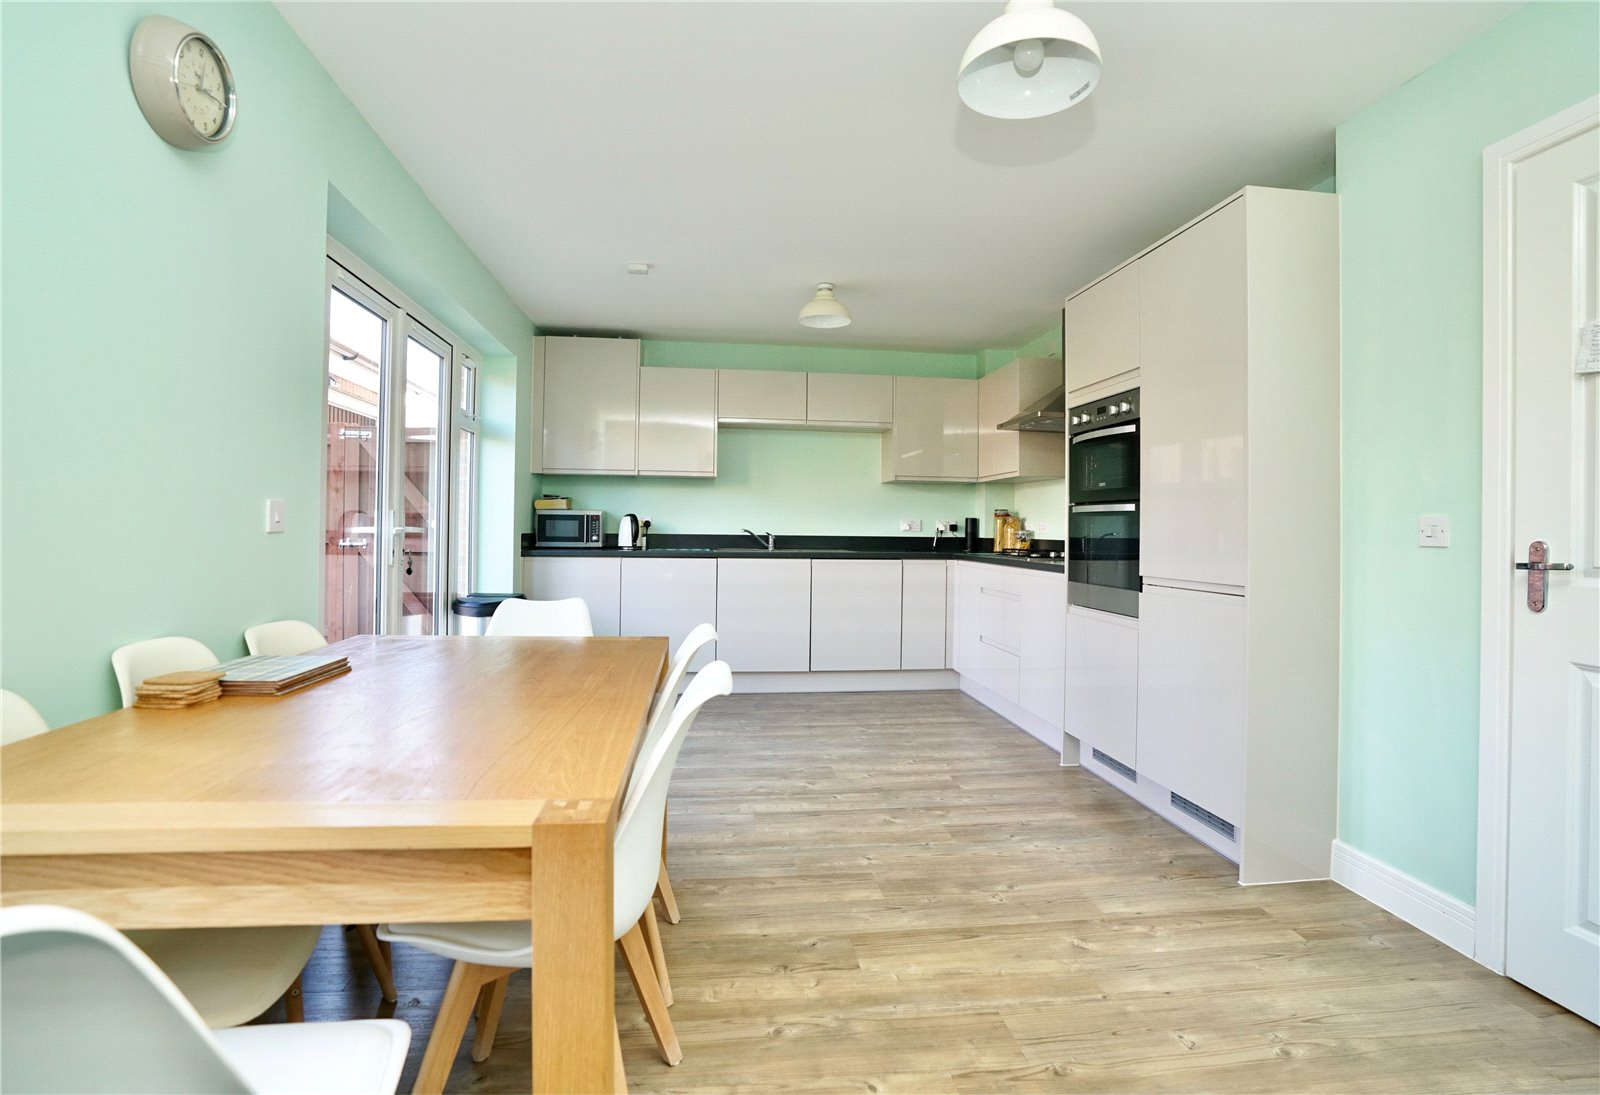 4 bed house for sale in Whinfell Close, Eaton Socon  - Property Image 2